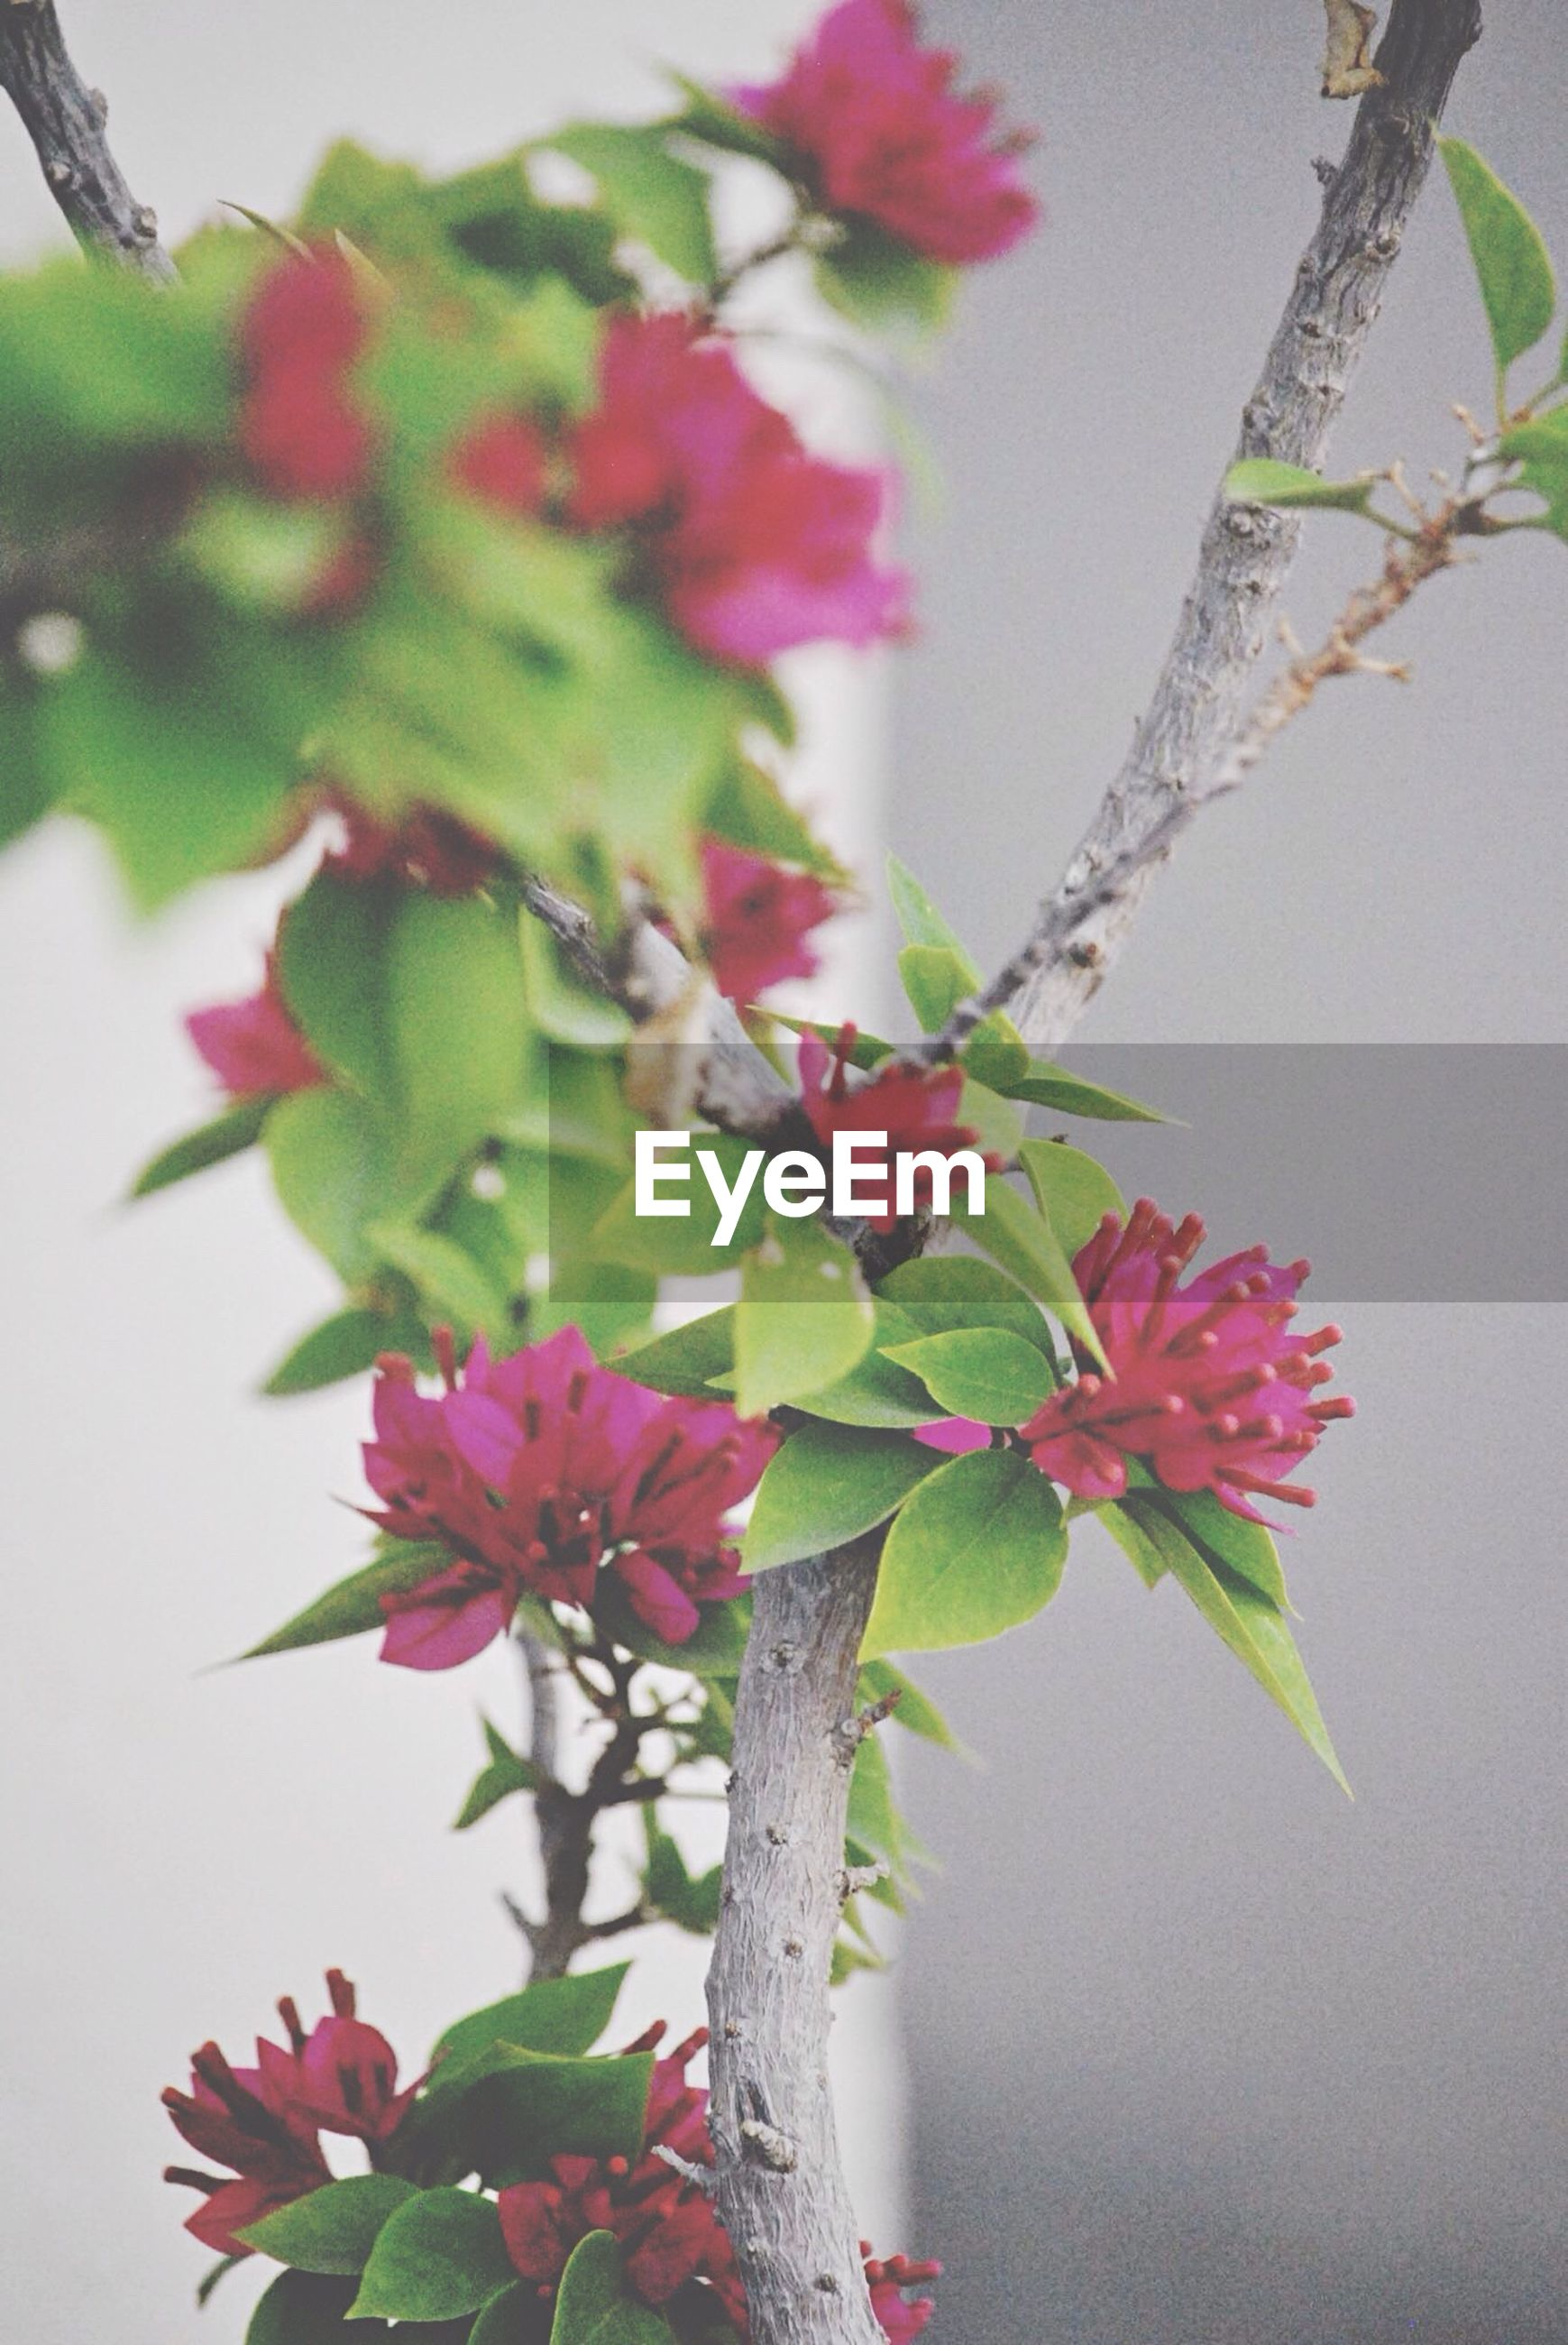 flower, growth, leaf, freshness, fragility, branch, close-up, focus on foreground, nature, beauty in nature, pink color, plant, petal, stem, low angle view, twig, day, blooming, bud, in bloom